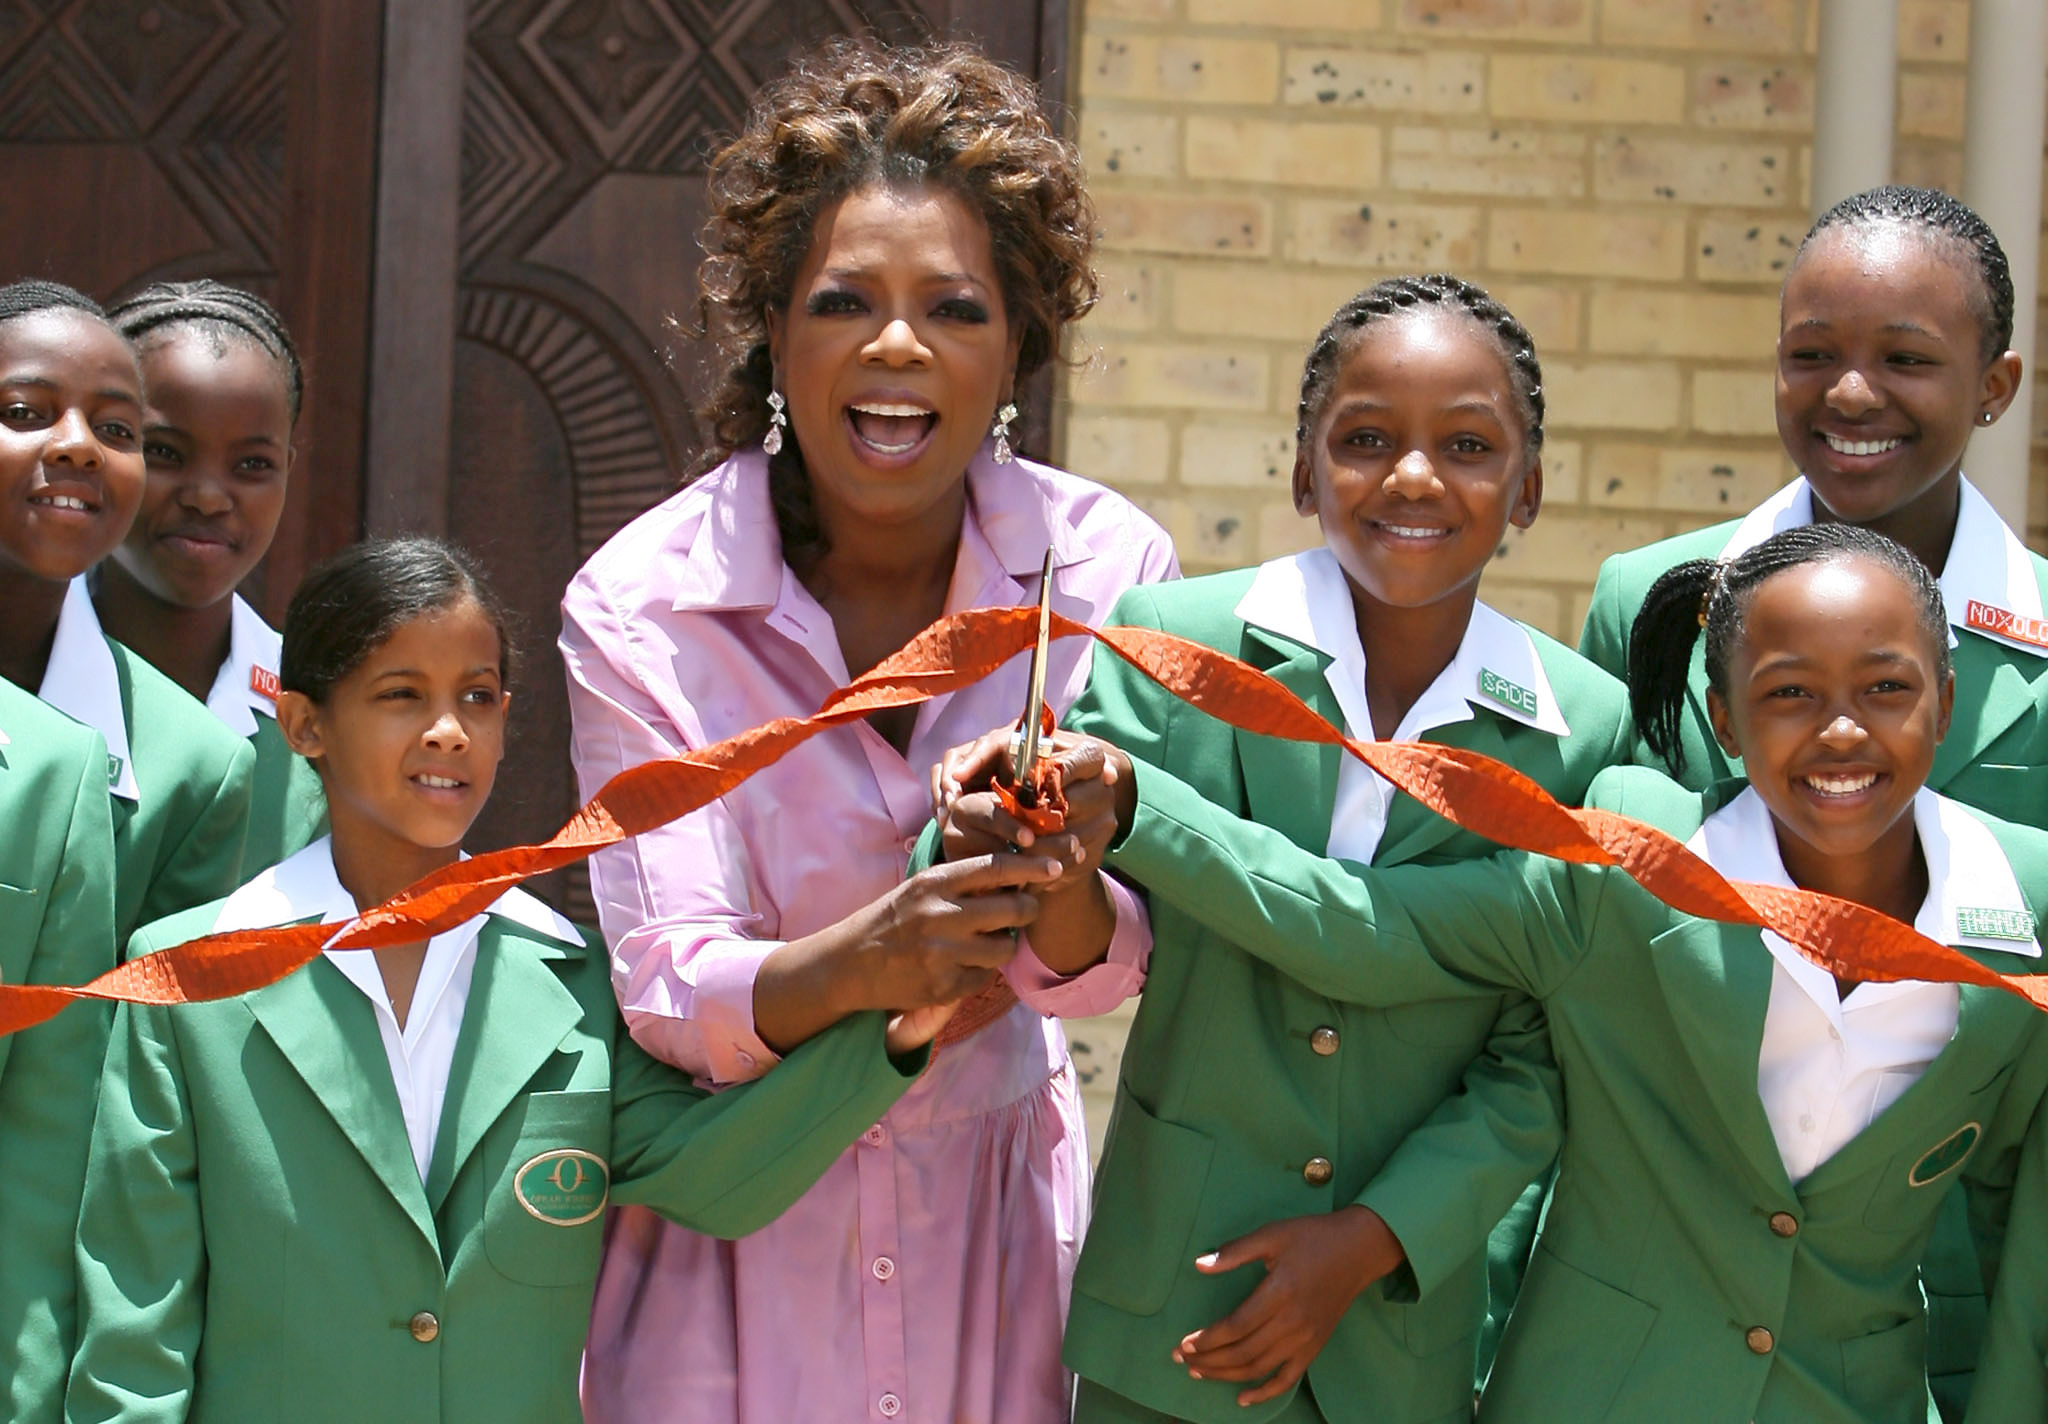 Oprah Winfrey Management Academy for Girls in South Africa 2020